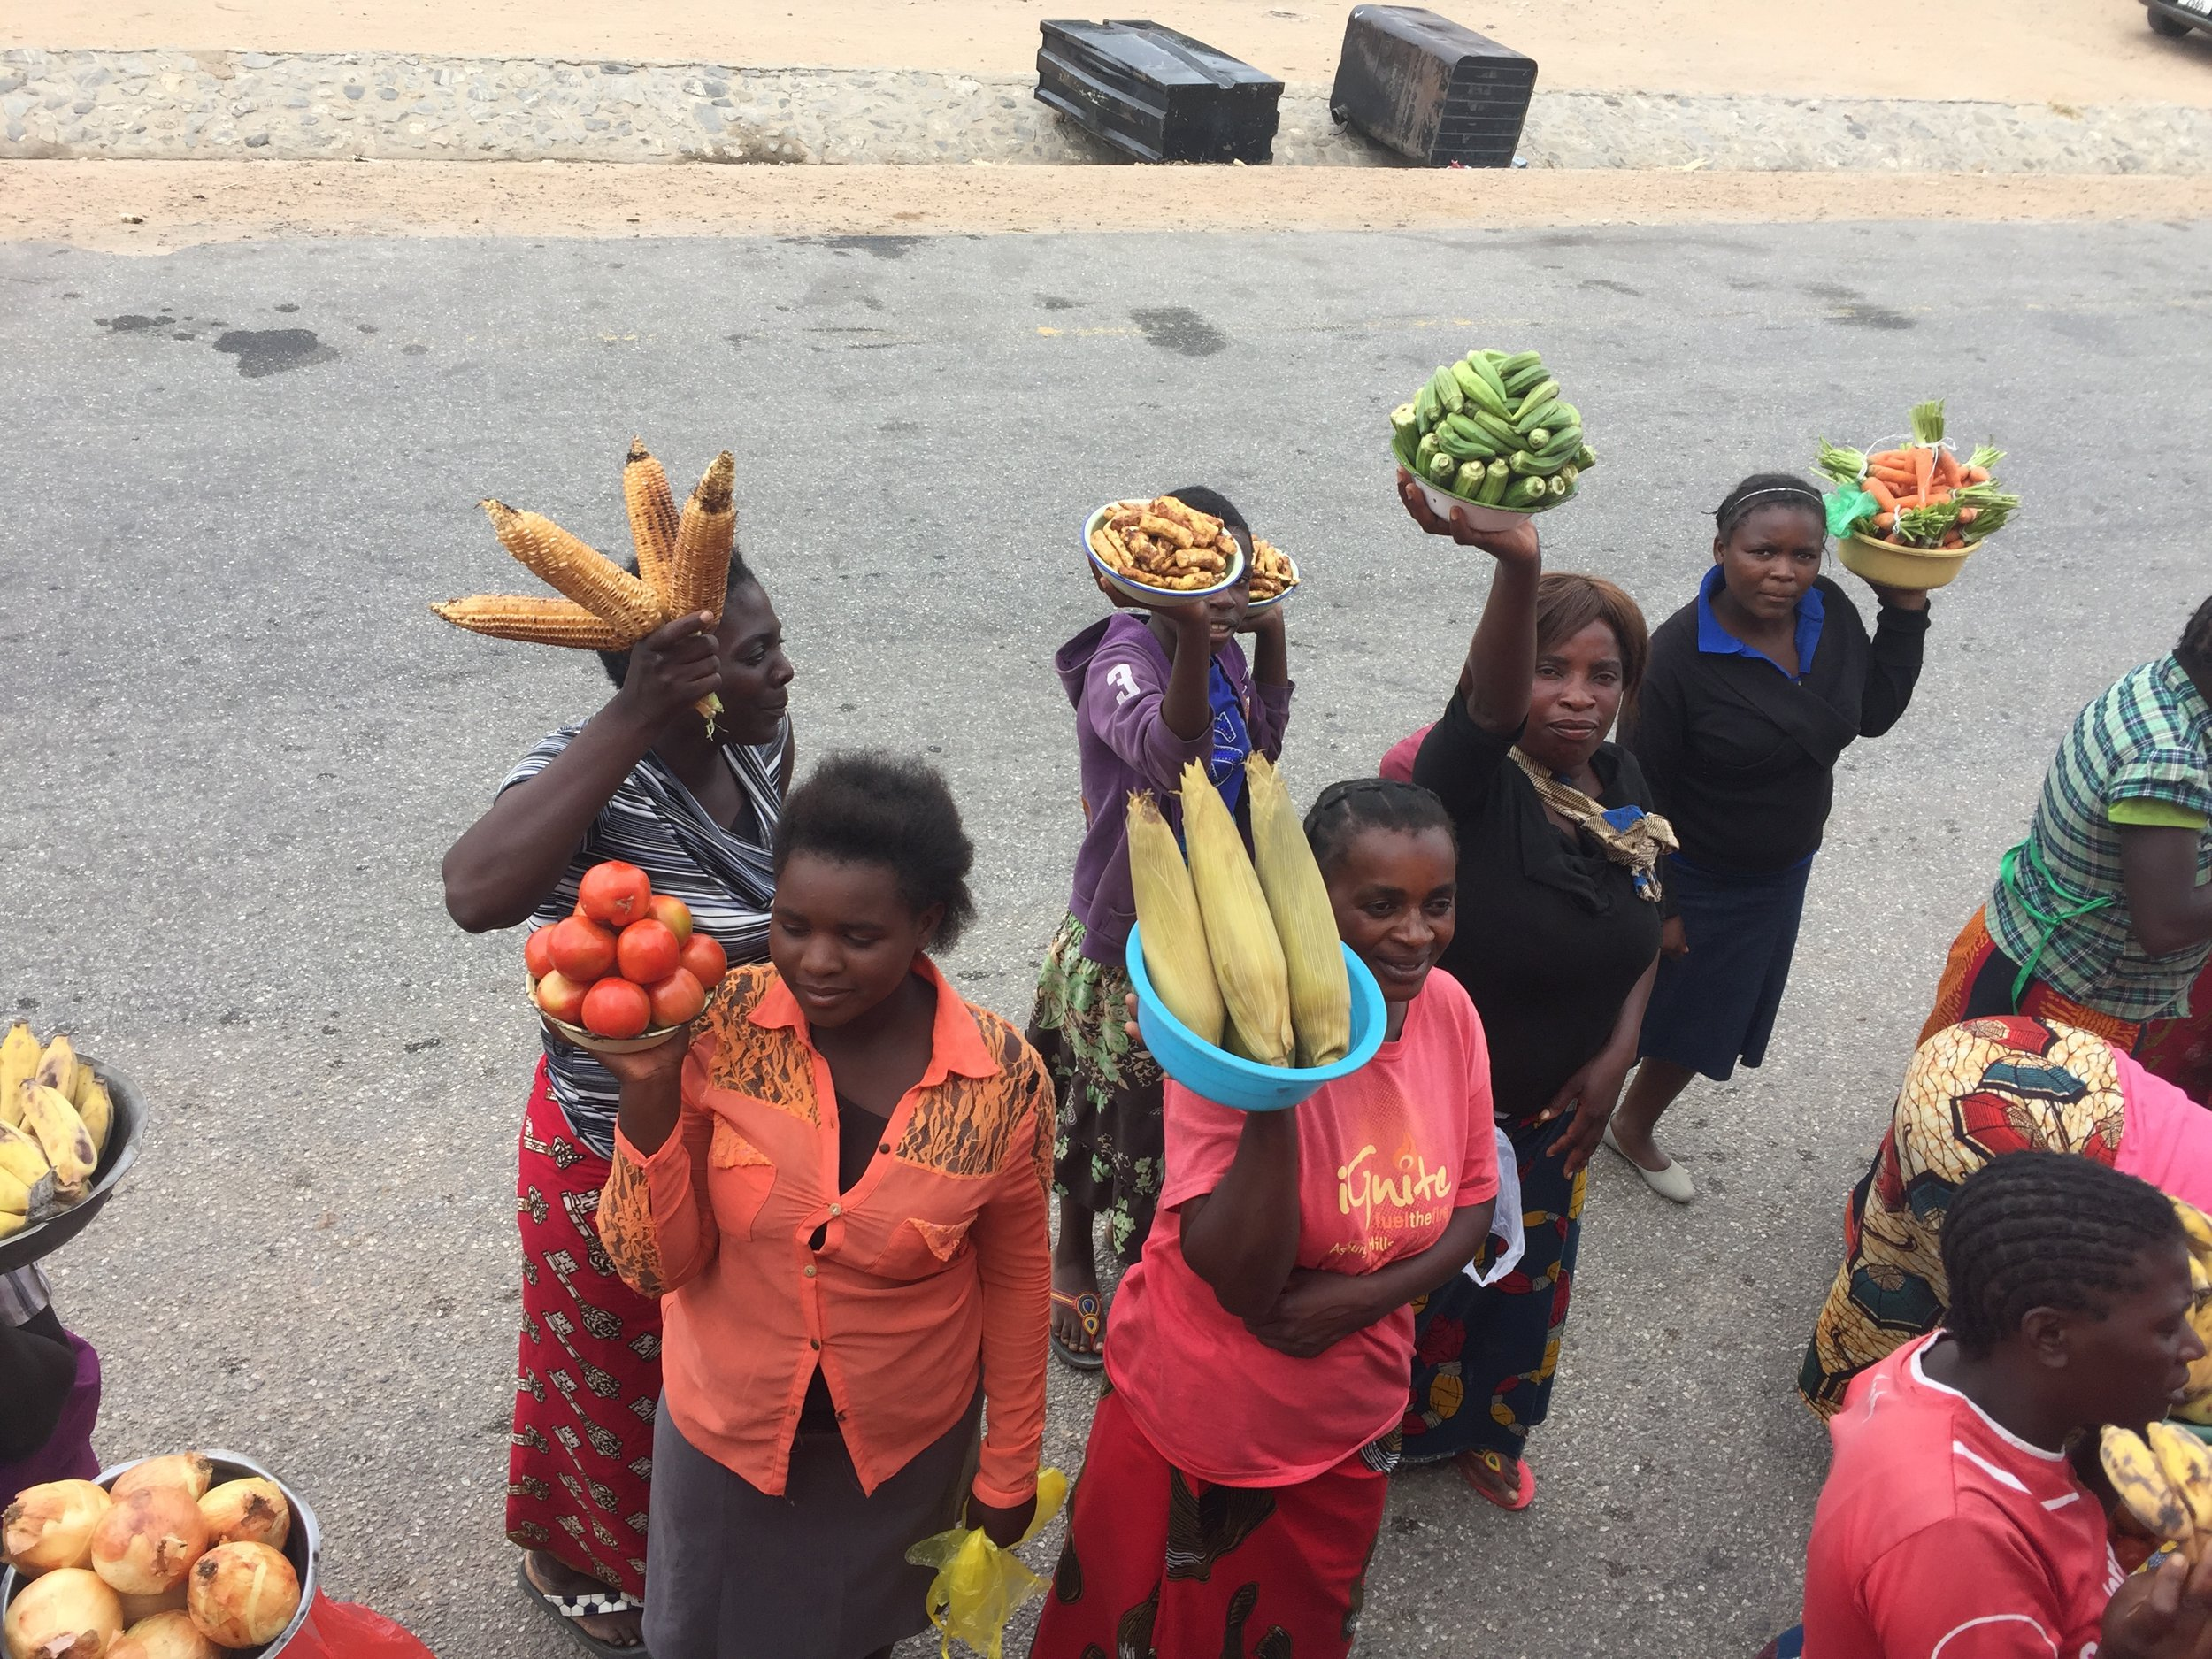 Women rush the side of the bus and reach up to sell fruits and vegetables to travelers.